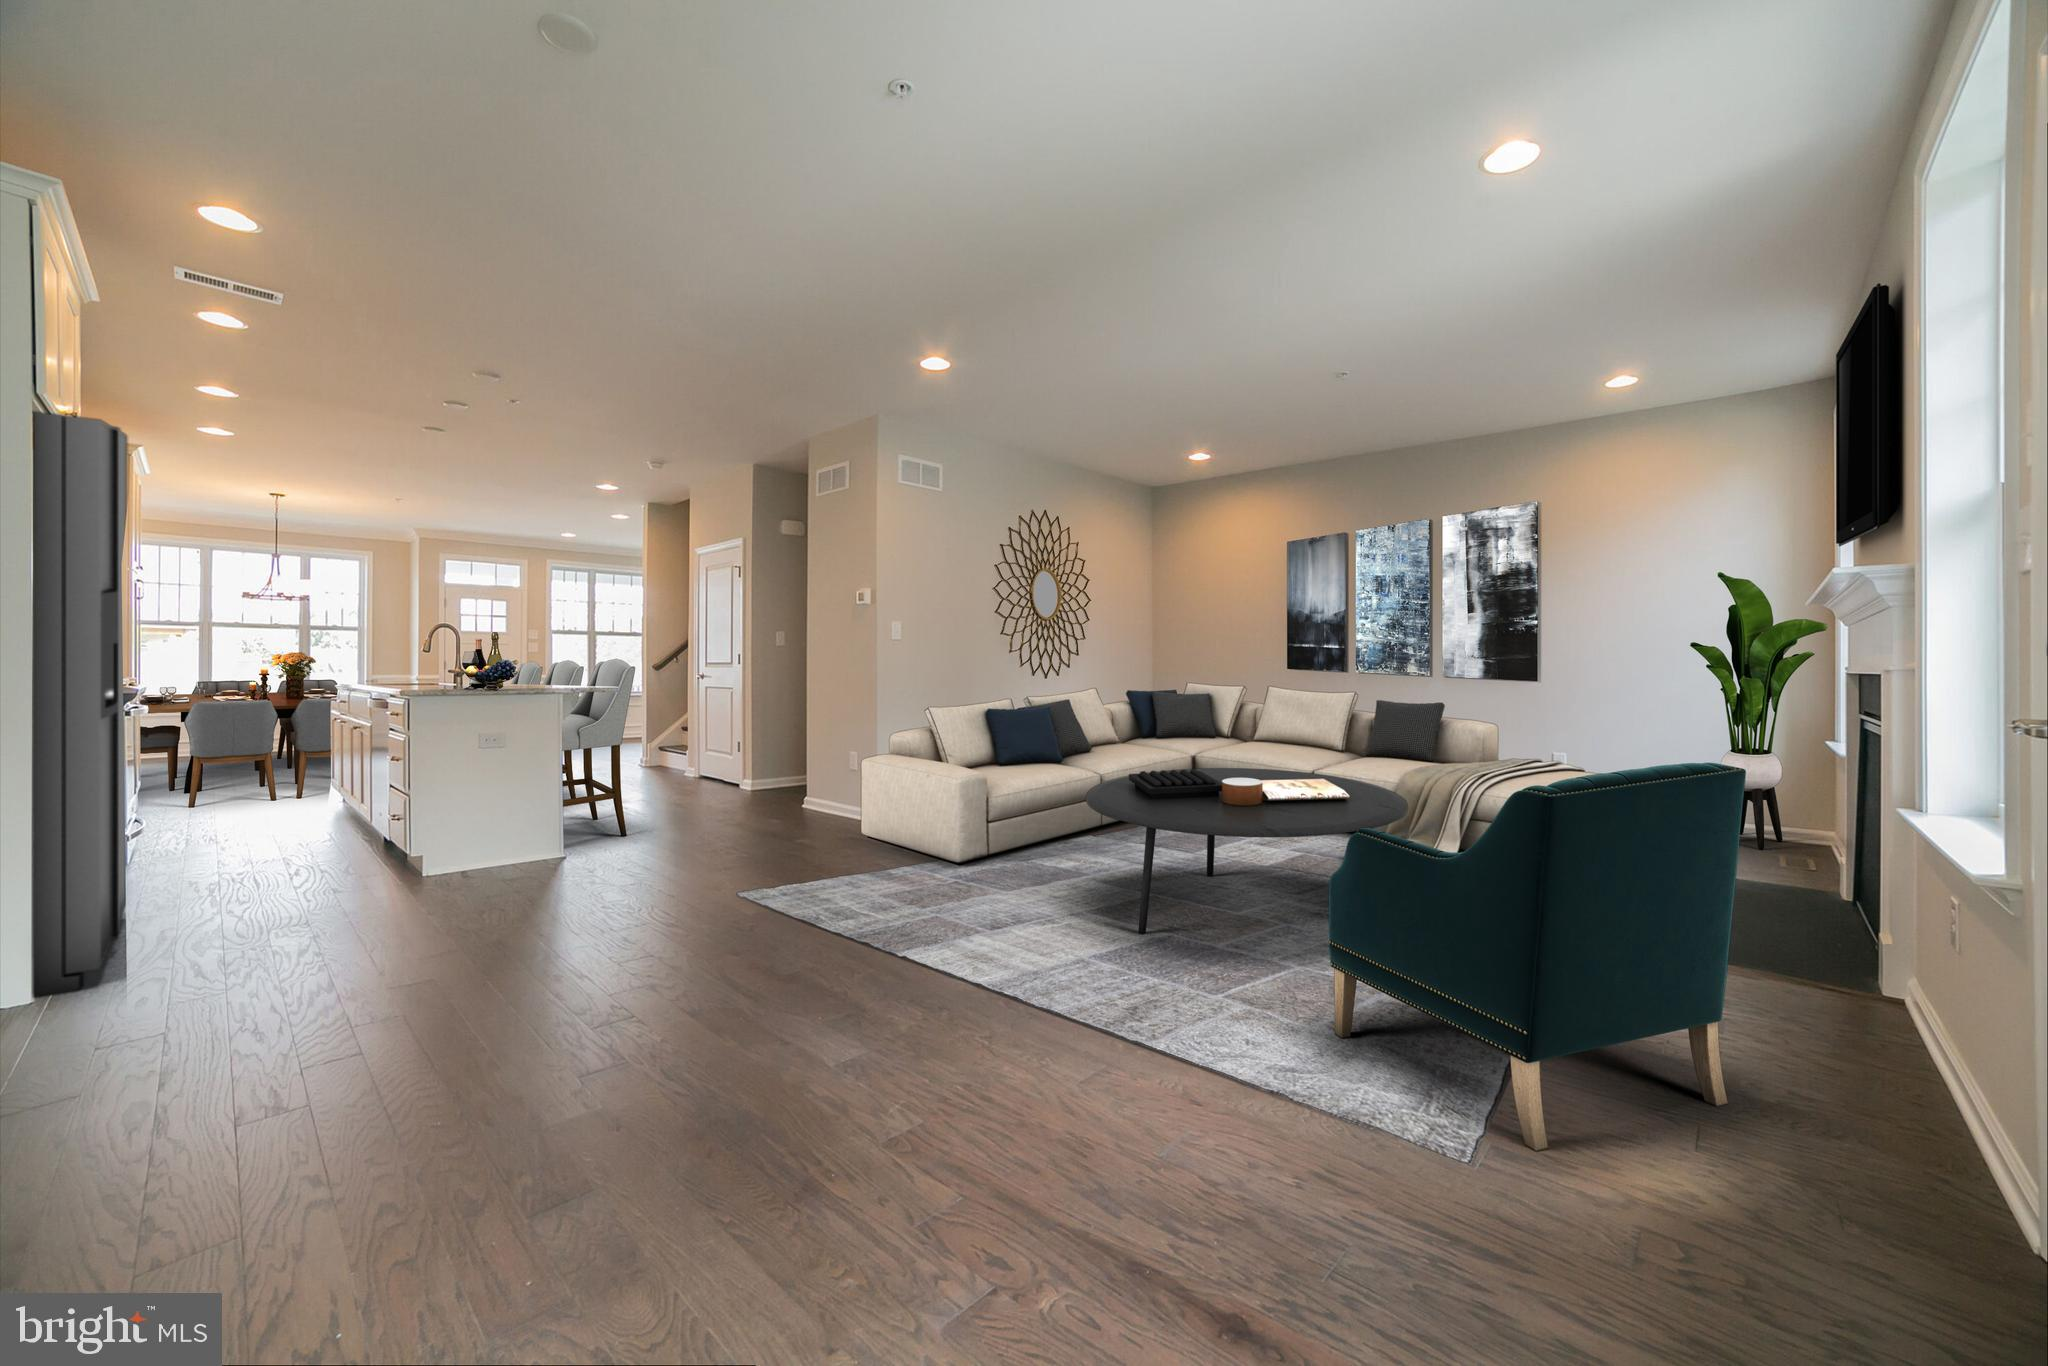 """2018 Synergy Award Winner for Best Energy Efficient Townhome & Best Community Clubhouse!  This flexible, open floor plan, our new Kingston V, is a 3 bedroom, 2 1/2 bath, 2-car detached garage.  Features 9' ceilings including a 9' poured foundation. The kitchen boasts granite counter tops, 42"""" cabinets and SS appliances. The large great room, separate breakfast nook, dining room and den/study complete the main living level. Enjoy the convenience of the 2nd floor laundry. Quality materials such as Hardie Plank siding on all sides and real window shutters depending on elevation.  Traditional Neighborhood Development (TND) promotes a sense of community not usually experienced in today's suburban developments.  Our design center will allow you to customize your home to your specific wants and needs. Spring Oak offers carefree living that has something for everyone; swimming pool, fitness center, walking trails, basketball court, community garden and 2018 Synergy Award winning Best Community Clubhouse.  Photos may vary from home. Price is based on time of deposit and contract within the required period of time.  Prices and terms of sale subject to change without notice.  Contact the Sales Office with any questions or to schedule a showing.  The Sales Office is open Monday-Saturday 10-5 and Sunday 12-5."""